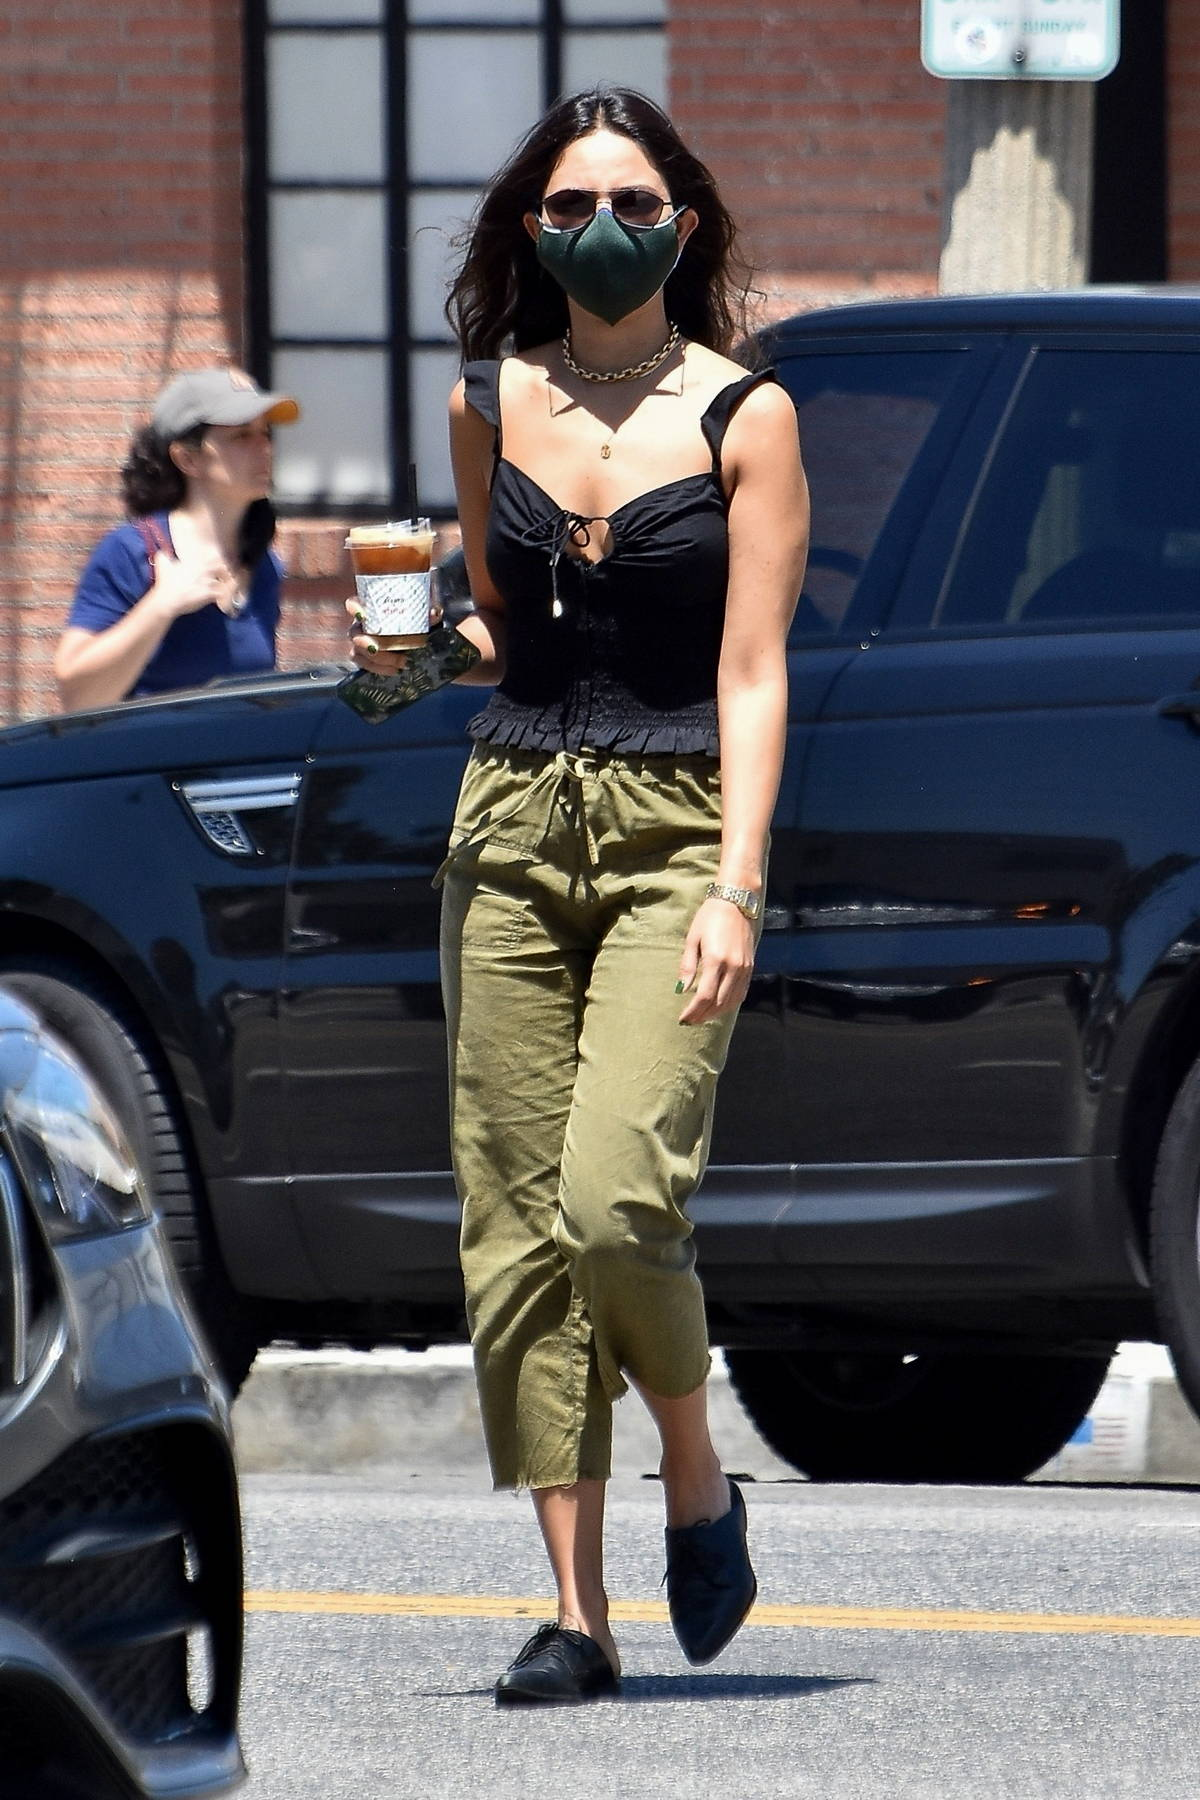 Eiza Gonzalez wears a black top and green drawstring pants while making a coffee run in West Hollywood, California